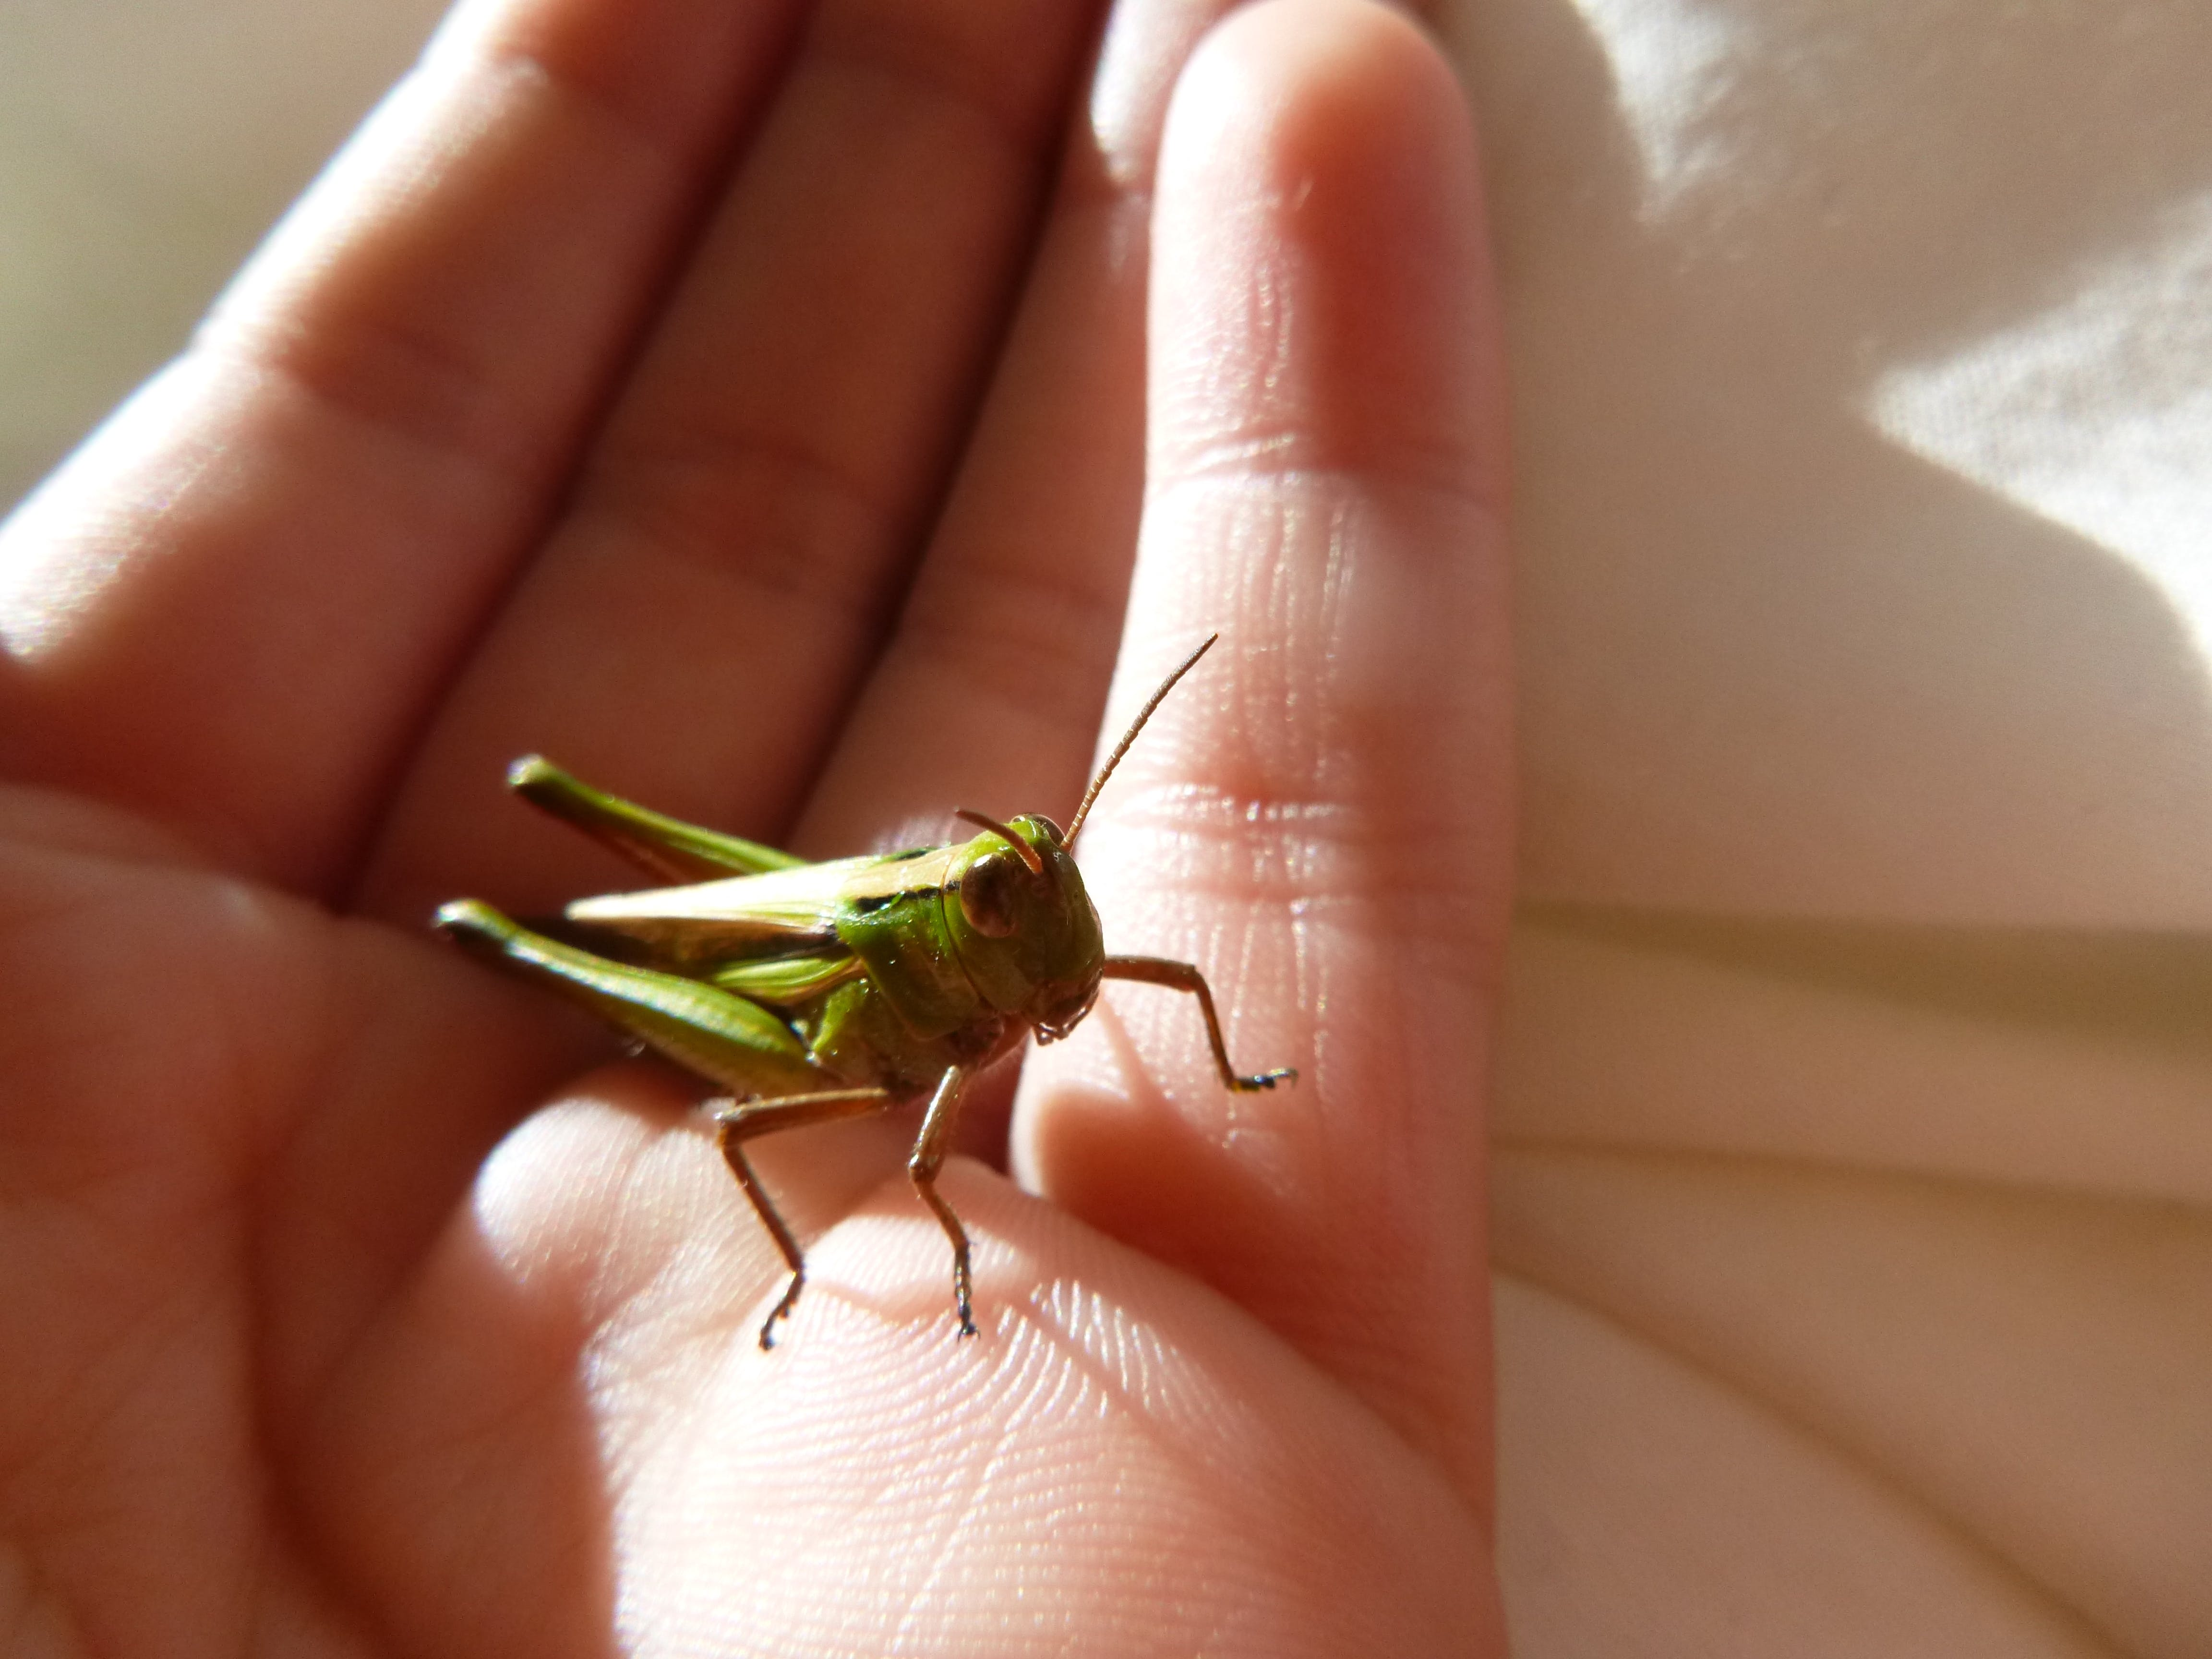 Free stock photo of grasshopper cricket insect animal bug